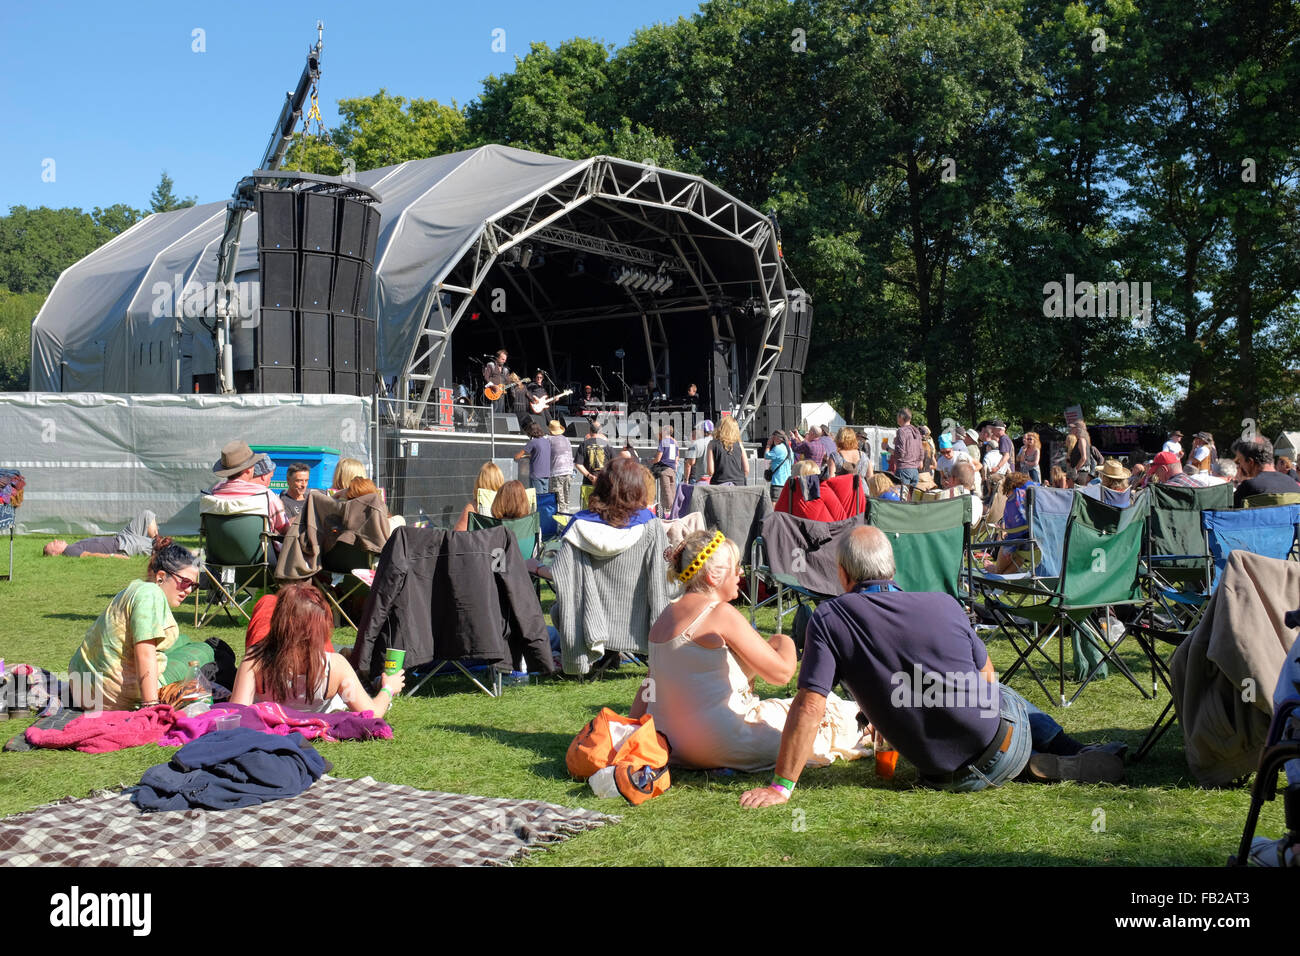 England, Surrey, Tilford. People relax in the afternoon sun whilst listening to a band at the Weyfest music festival - Stock Image